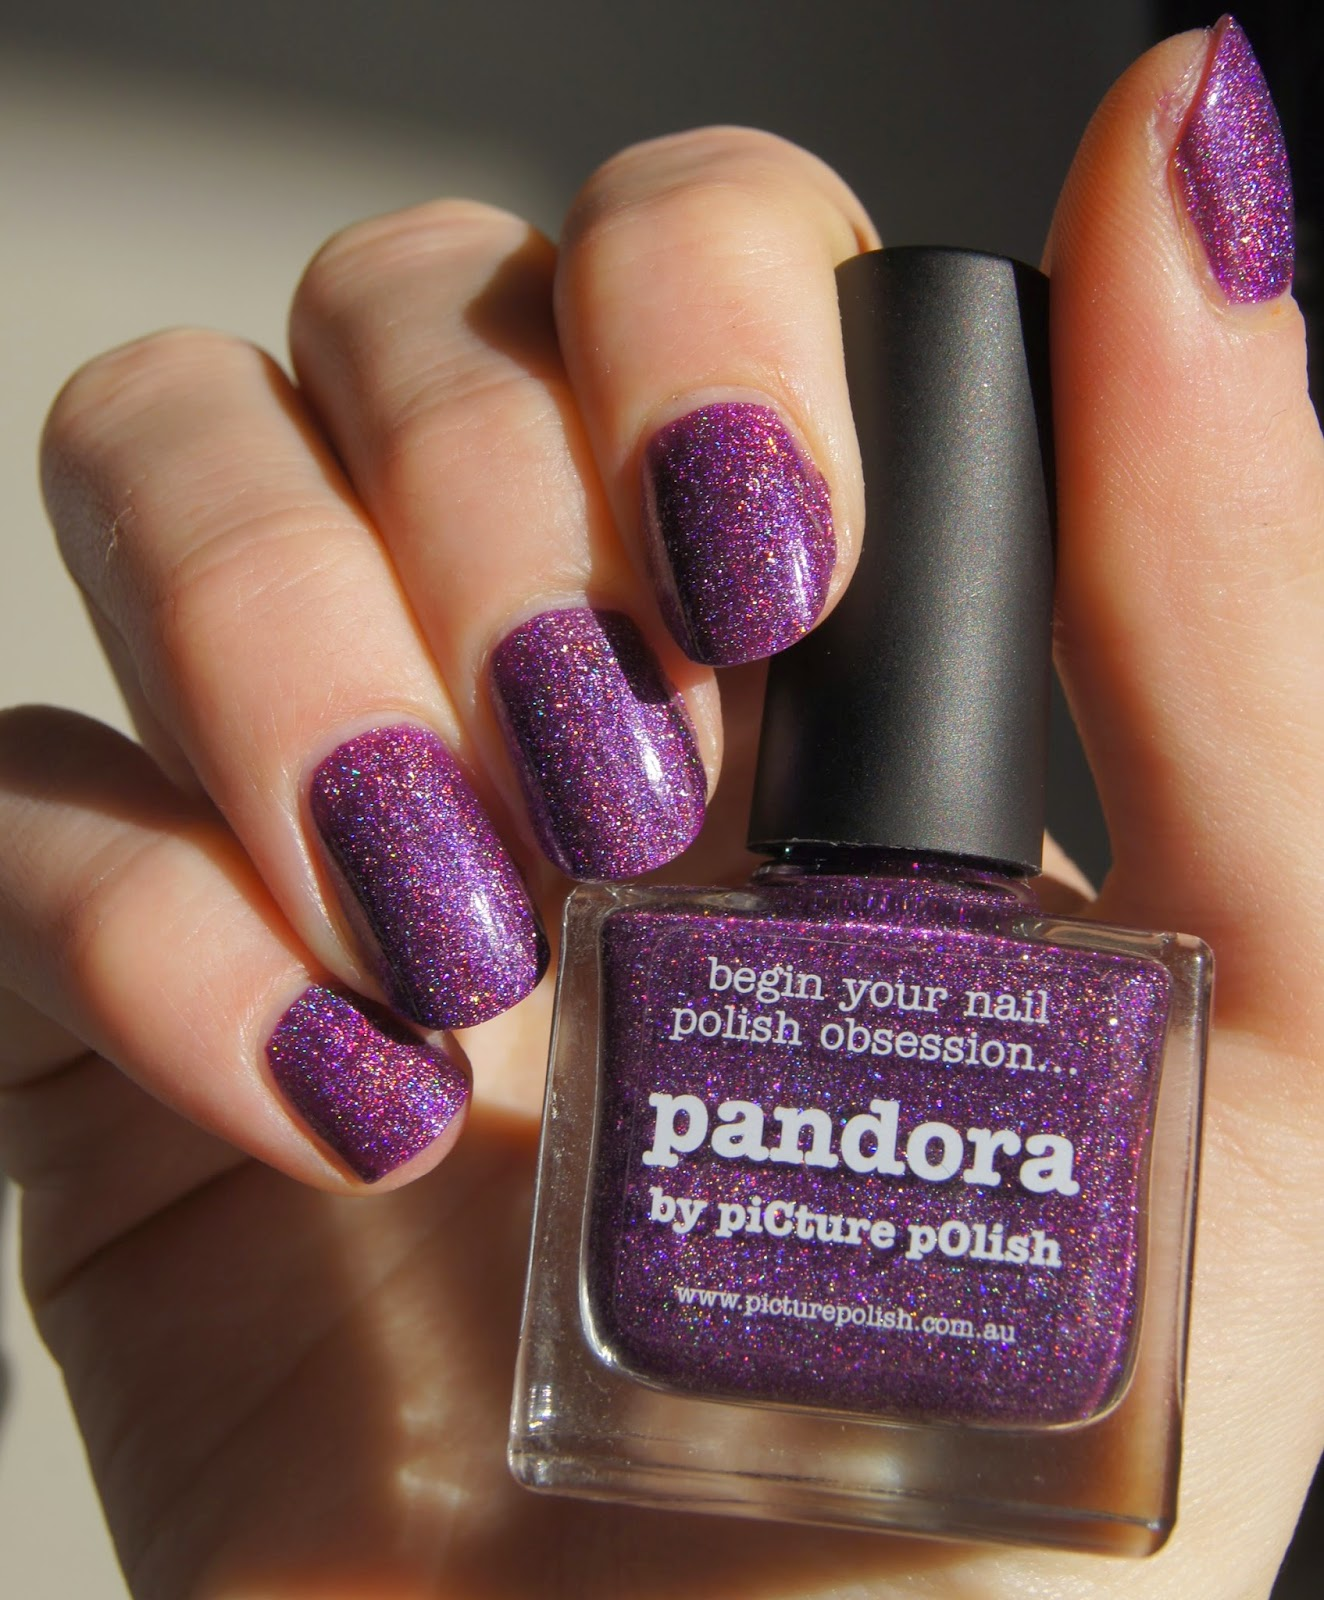 pandora picture polish ozotic 624